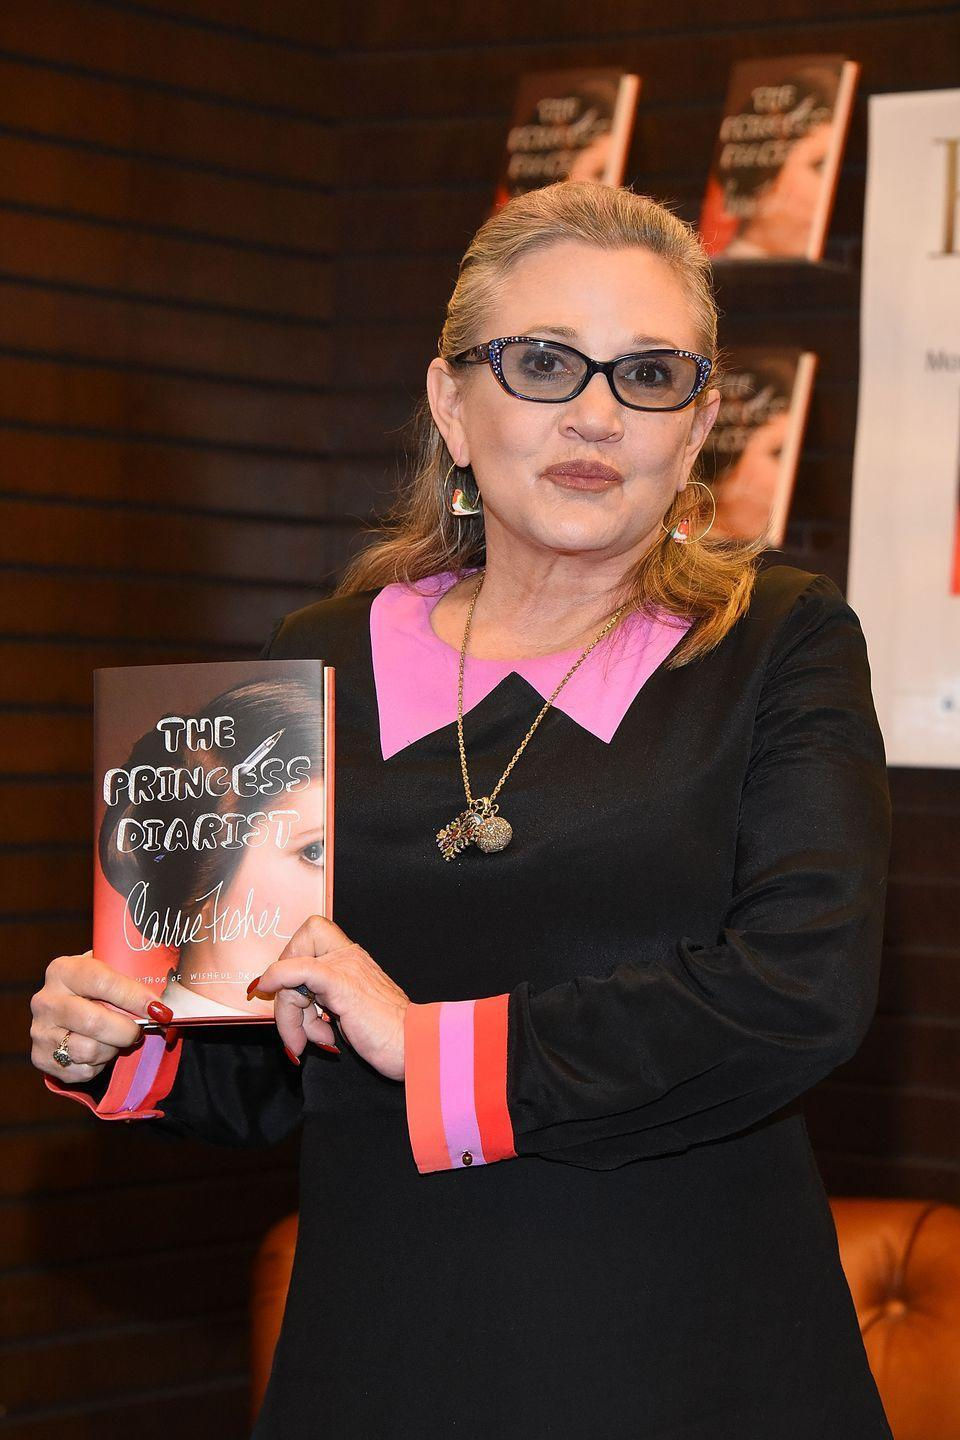 "<p>With more to reveal, Carrie graced us with yet another memoir — this time a <em>Star Wars</em> tell-all. <em><a href=""https://www.amazon.com/Princess-Diarist-Carrie-Fisher/dp/0399173595?tag=syn-yahoo-20&ascsubtag=%5Bartid%7C10055.g.32222003%5Bsrc%7Cyahoo-us"" rel=""nofollow noopener"" target=""_blank"" data-ylk=""slk:The Princess Diarist"" class=""link rapid-noclick-resp"">The Princess Diarist</a></em> was published in 2015 and was based on the actress's diaries she kept while filming the <em>Star Wars </em>films in the late '70s and early '80s. One of the bombs she dropped in the book? A three-month-long <a href=""https://www.youtube.com/watch?v=7qSy7azPCSc"" rel=""nofollow noopener"" target=""_blank"" data-ylk=""slk:affair with her costar"" class=""link rapid-noclick-resp"">affair with her costar</a>, Harrison Ford. </p>"